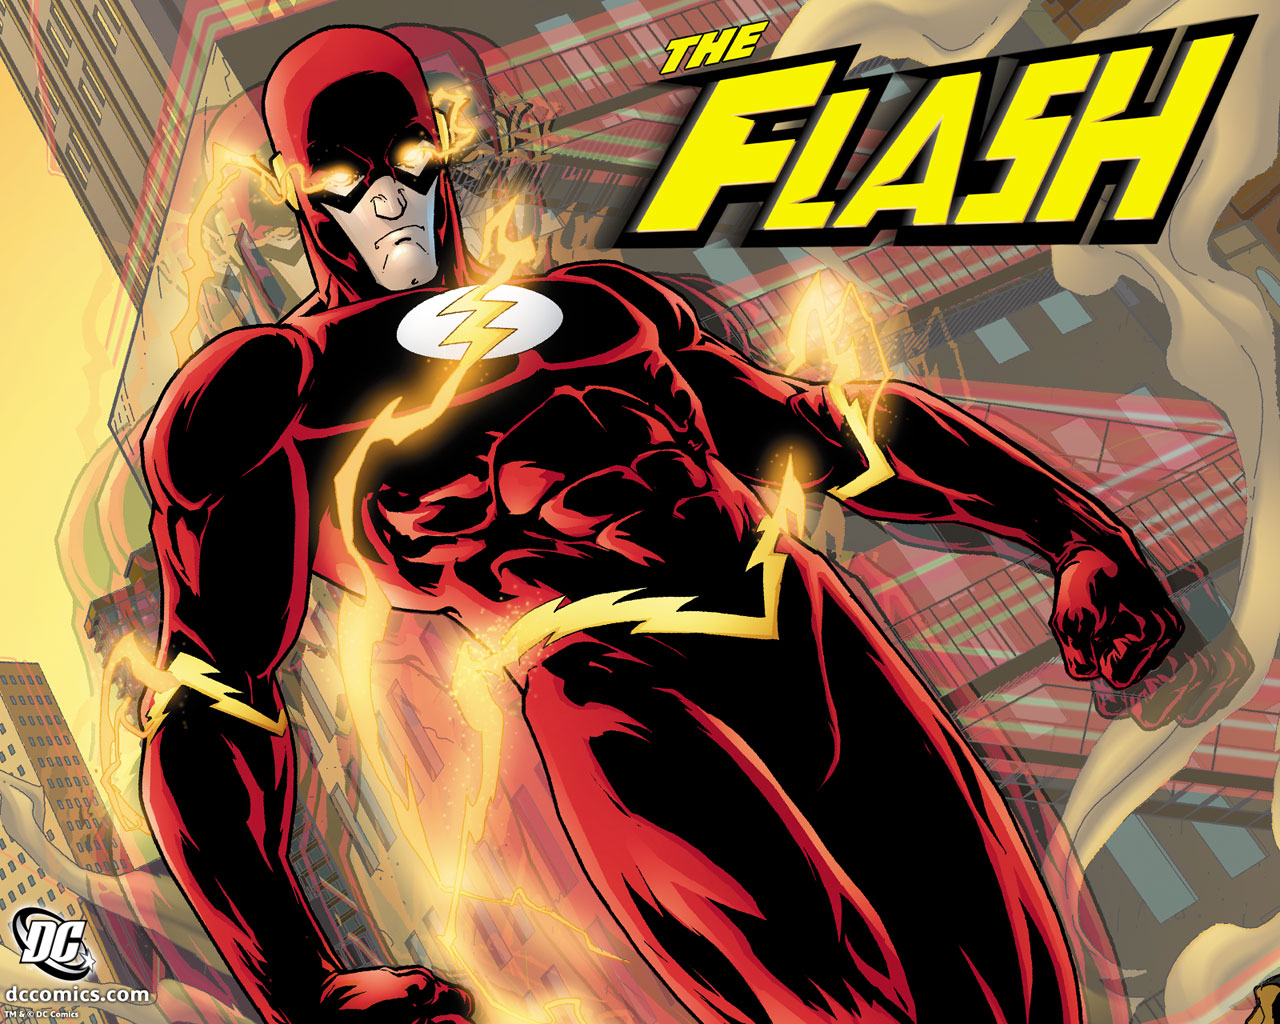 Papel de Parede The Flash Wallpaper para Download no Celular ou 1280x1024